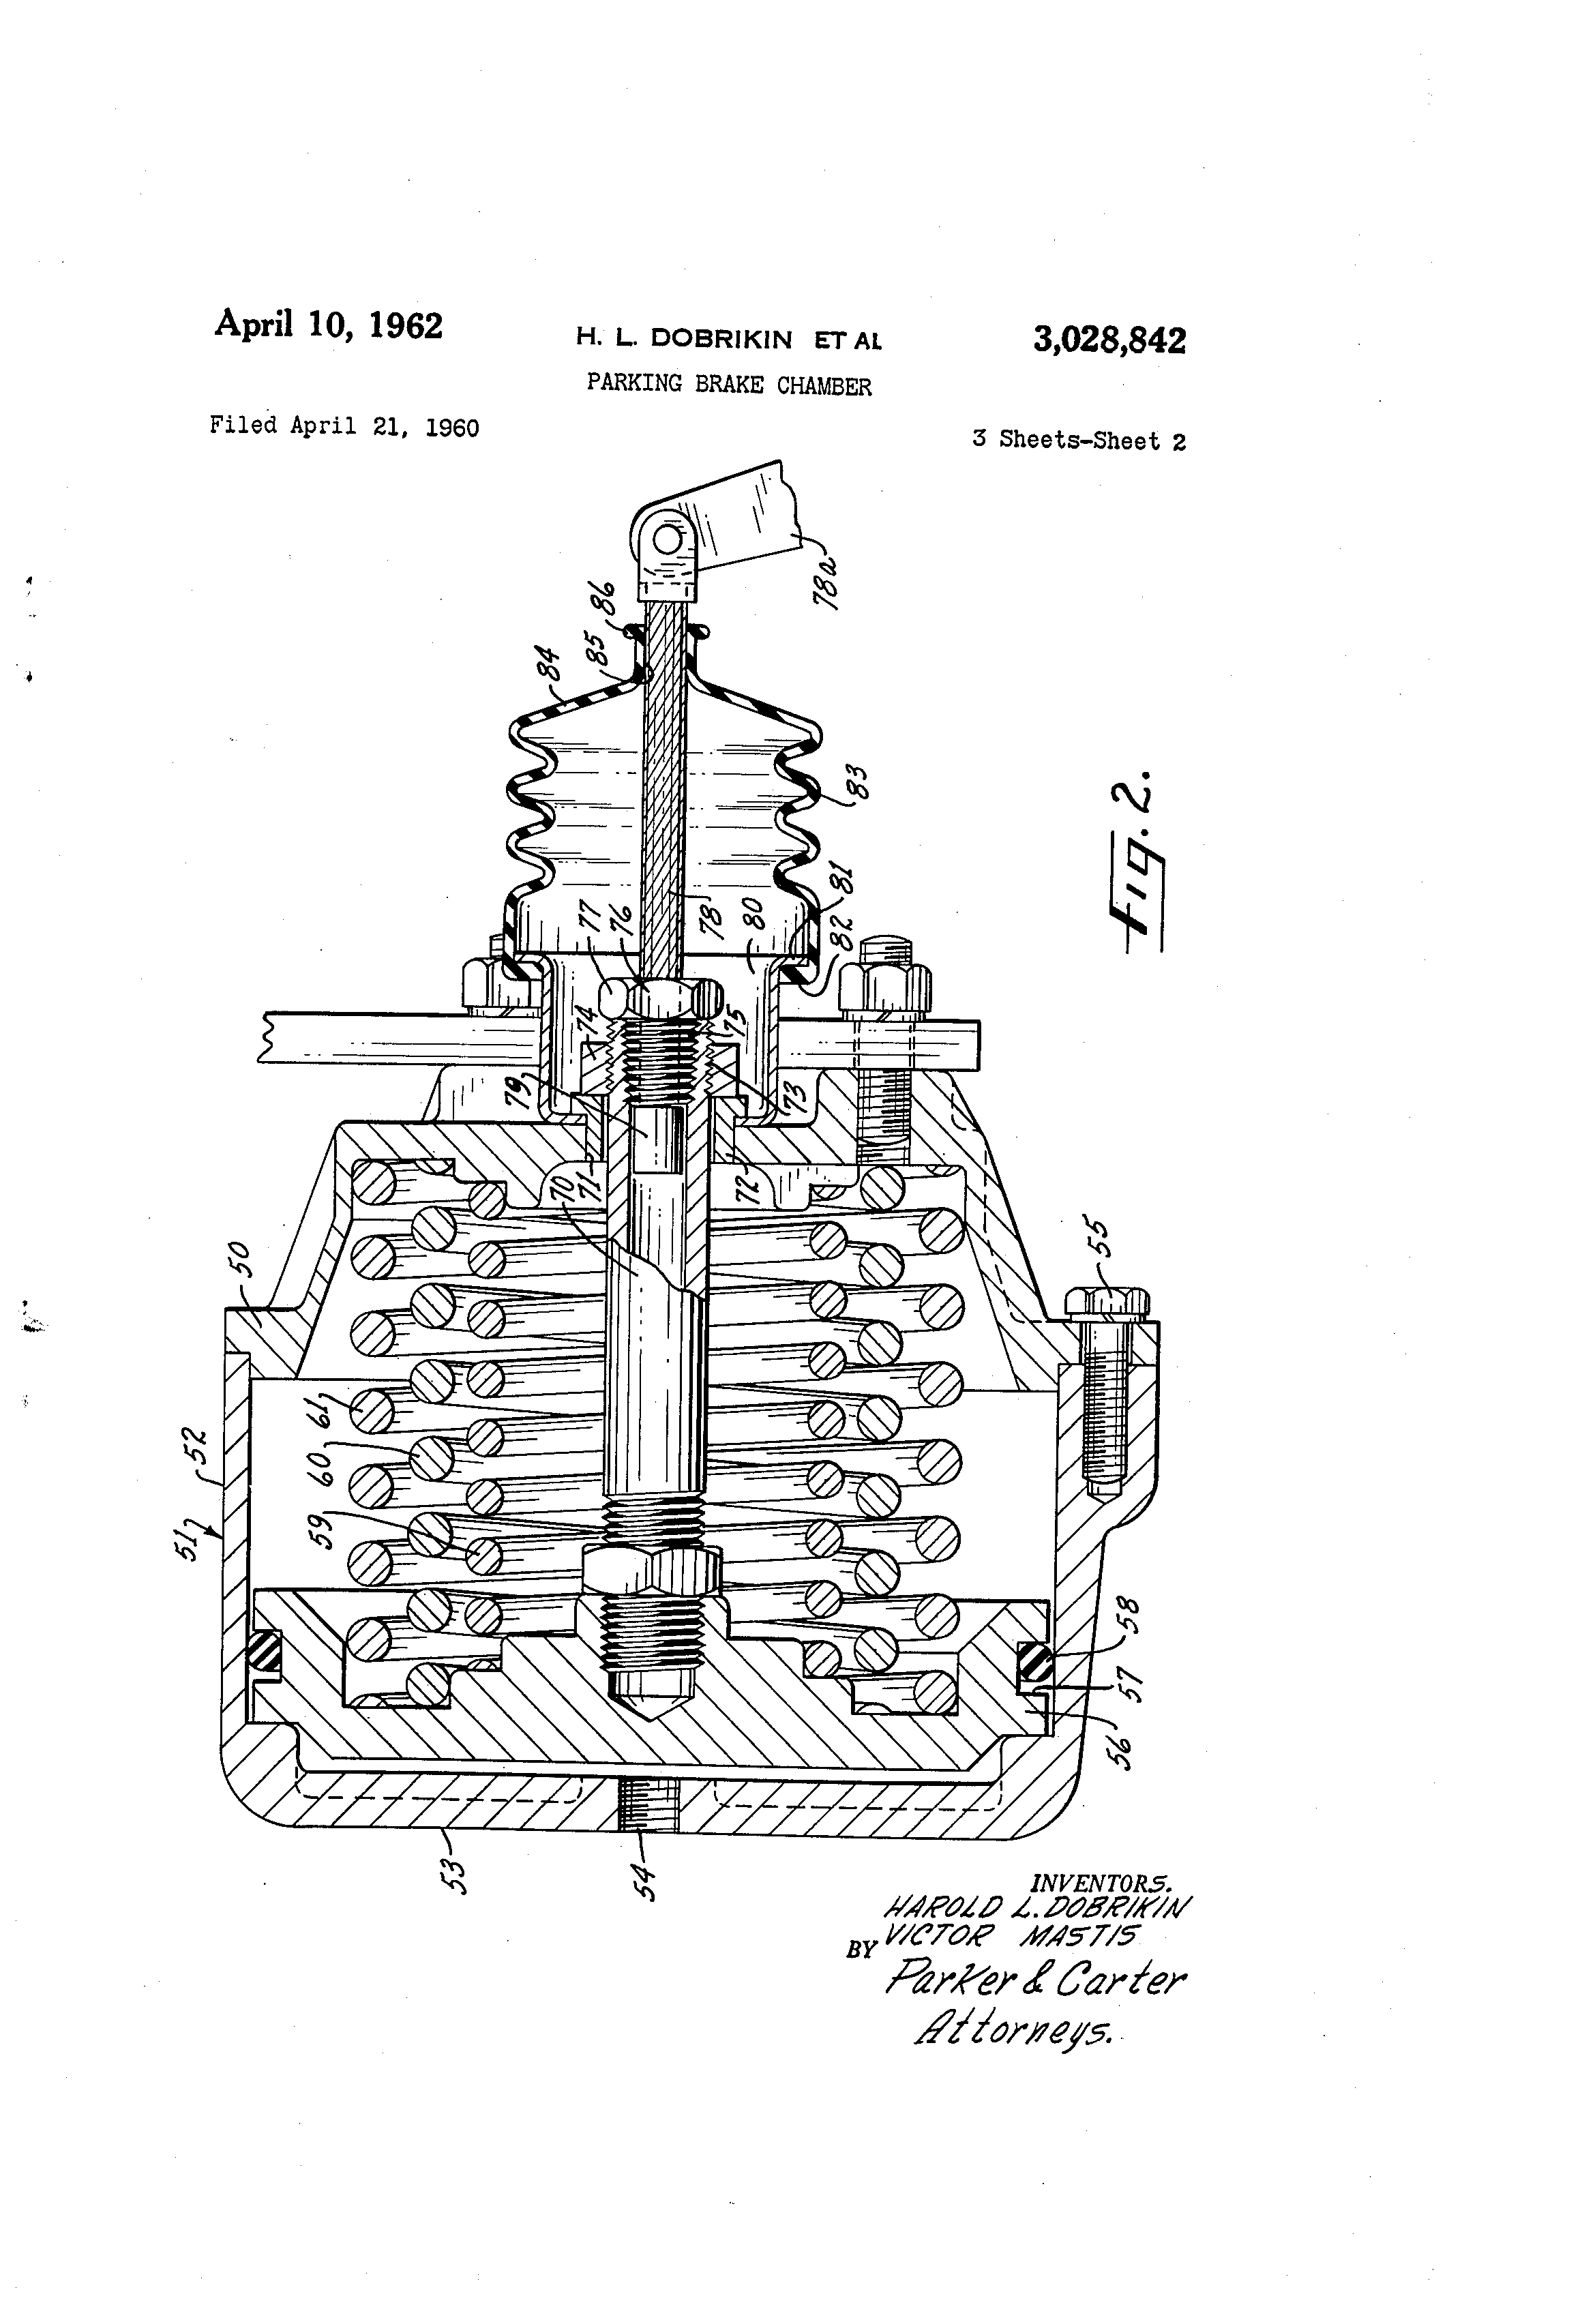 Patent Us3028842 Parking Brake Chamber Google Patents 302 Engine Diagram 20 Piston Drawing